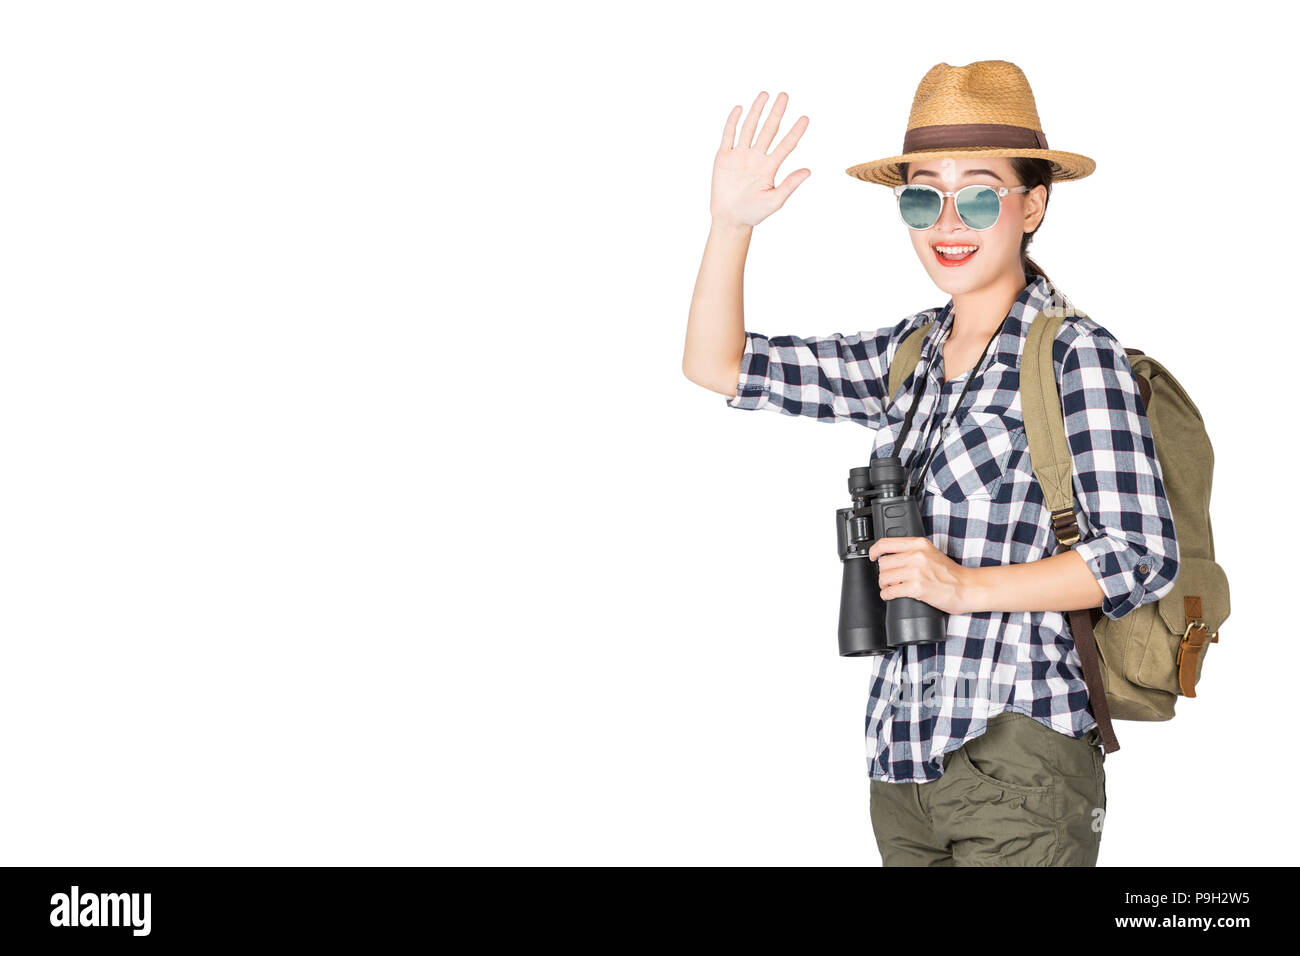 Woman with Binoculars and Telescope,Travel concept, isolated on white background - Stock Image